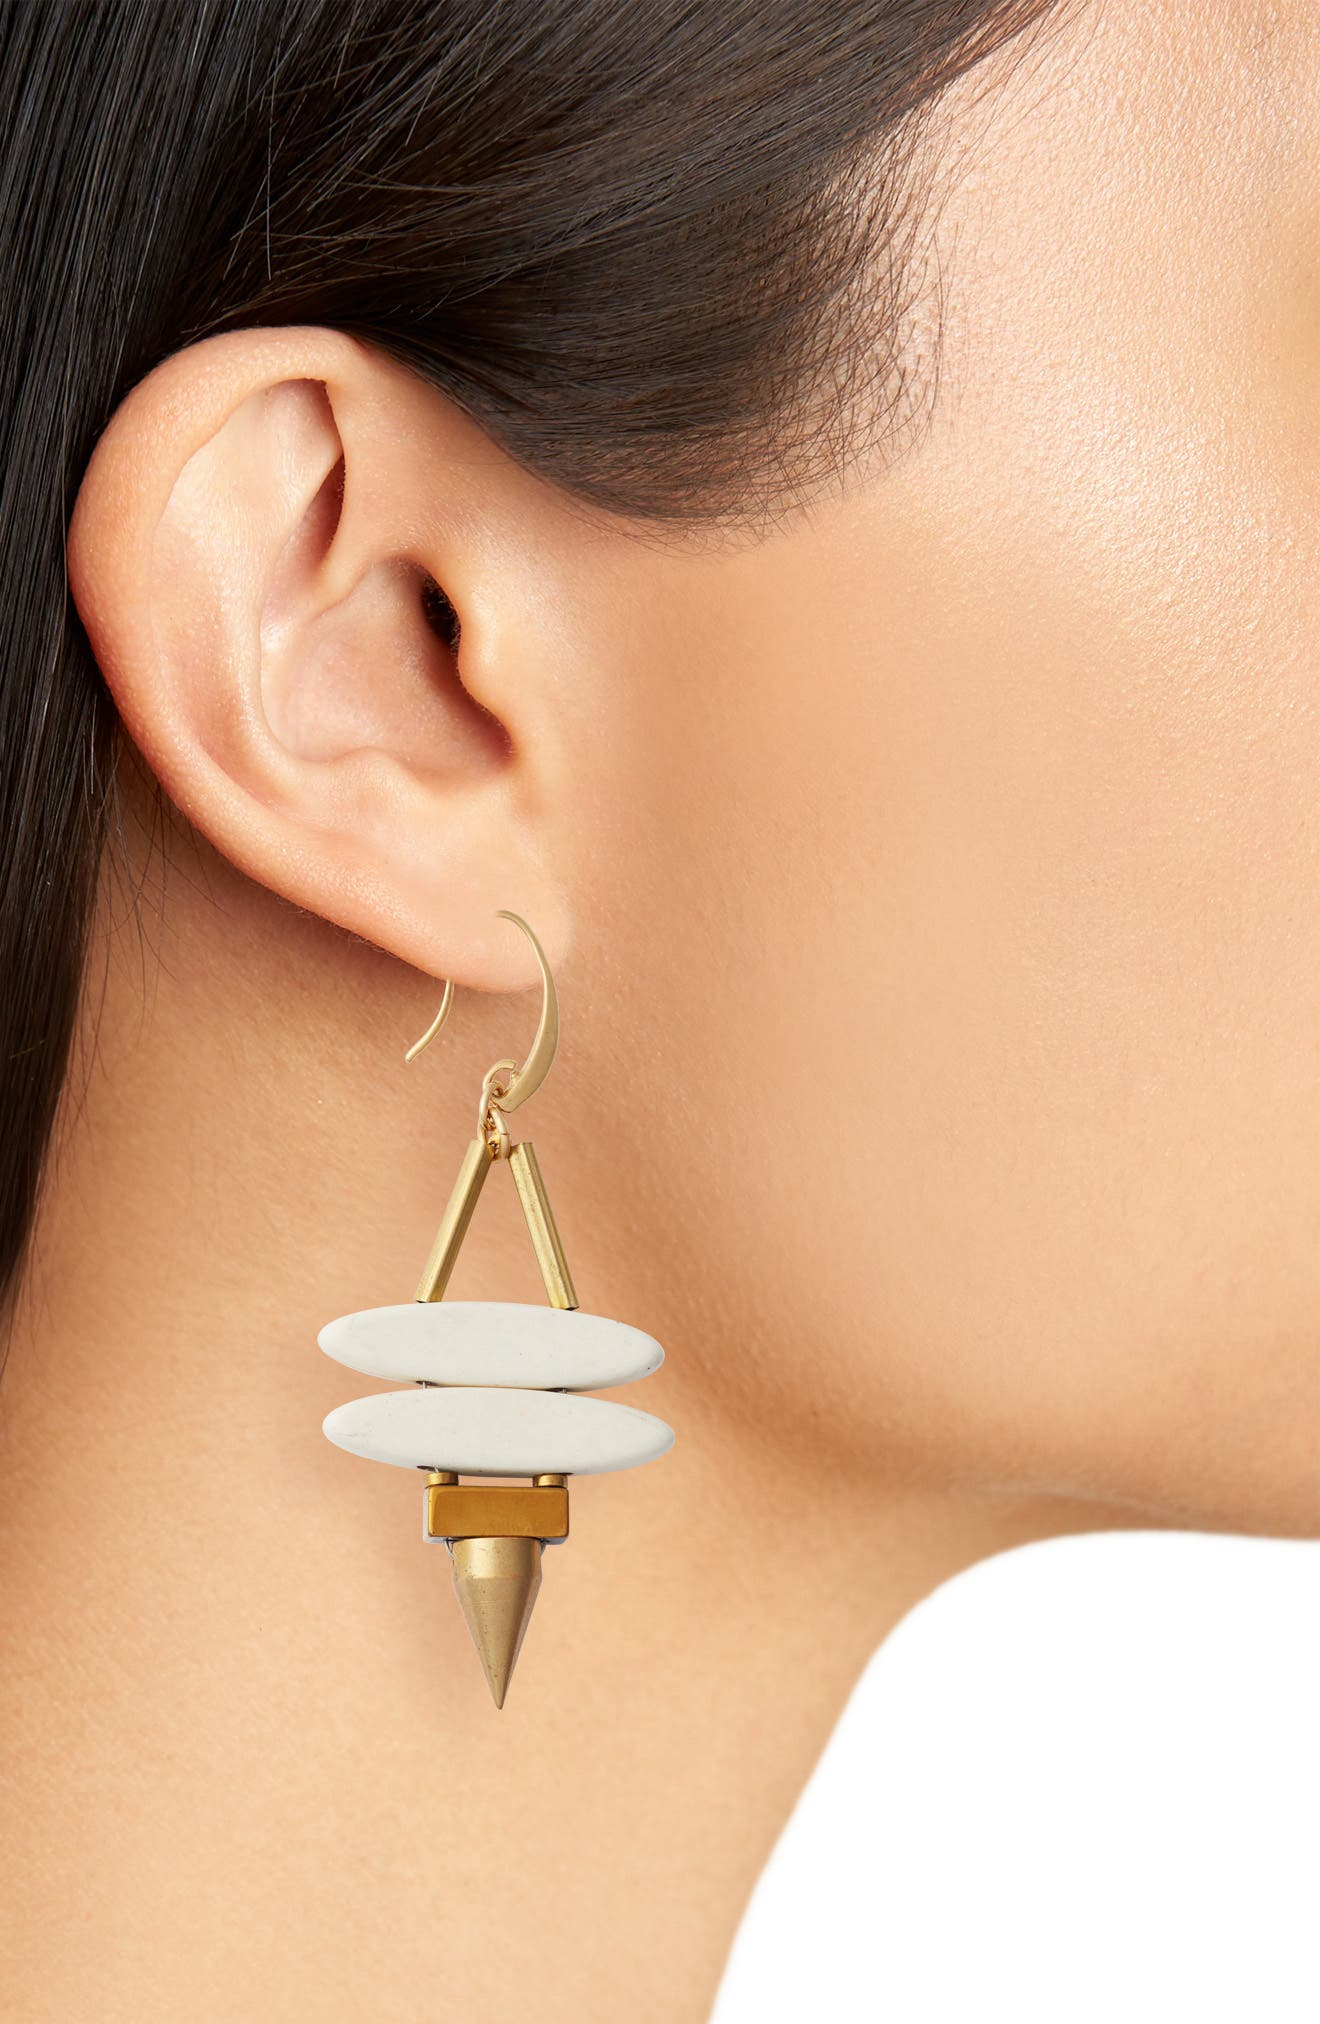 Sahara Spike Drop Earrings,                             Alternate thumbnail 2, color,                             White/ Gold